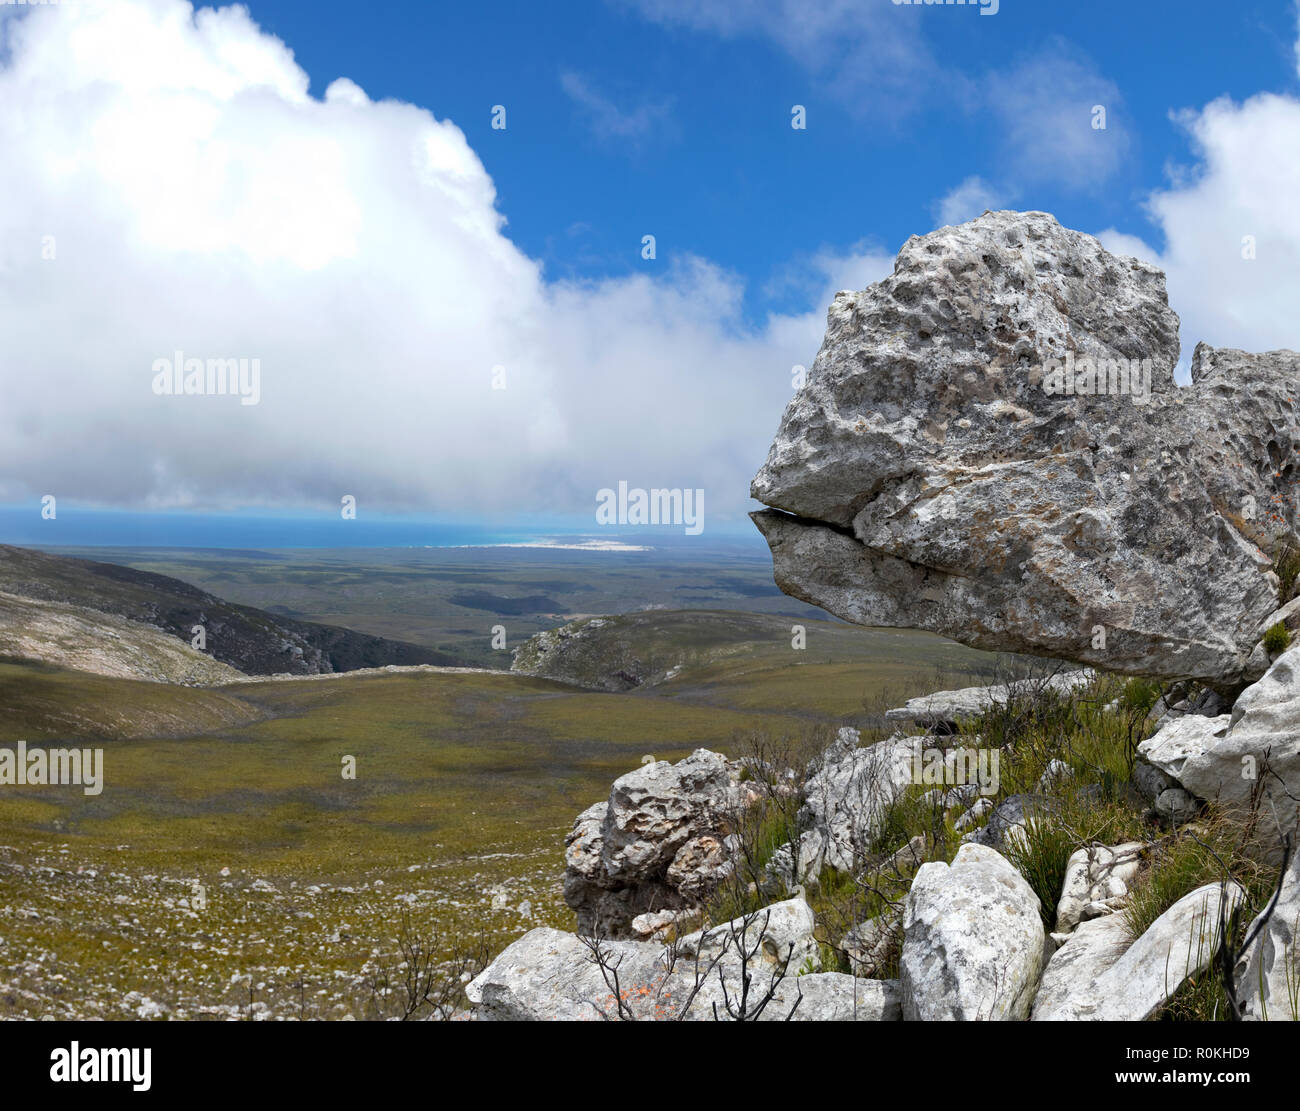 Landscape from the De Hoop Nature Reserve - Stock Image